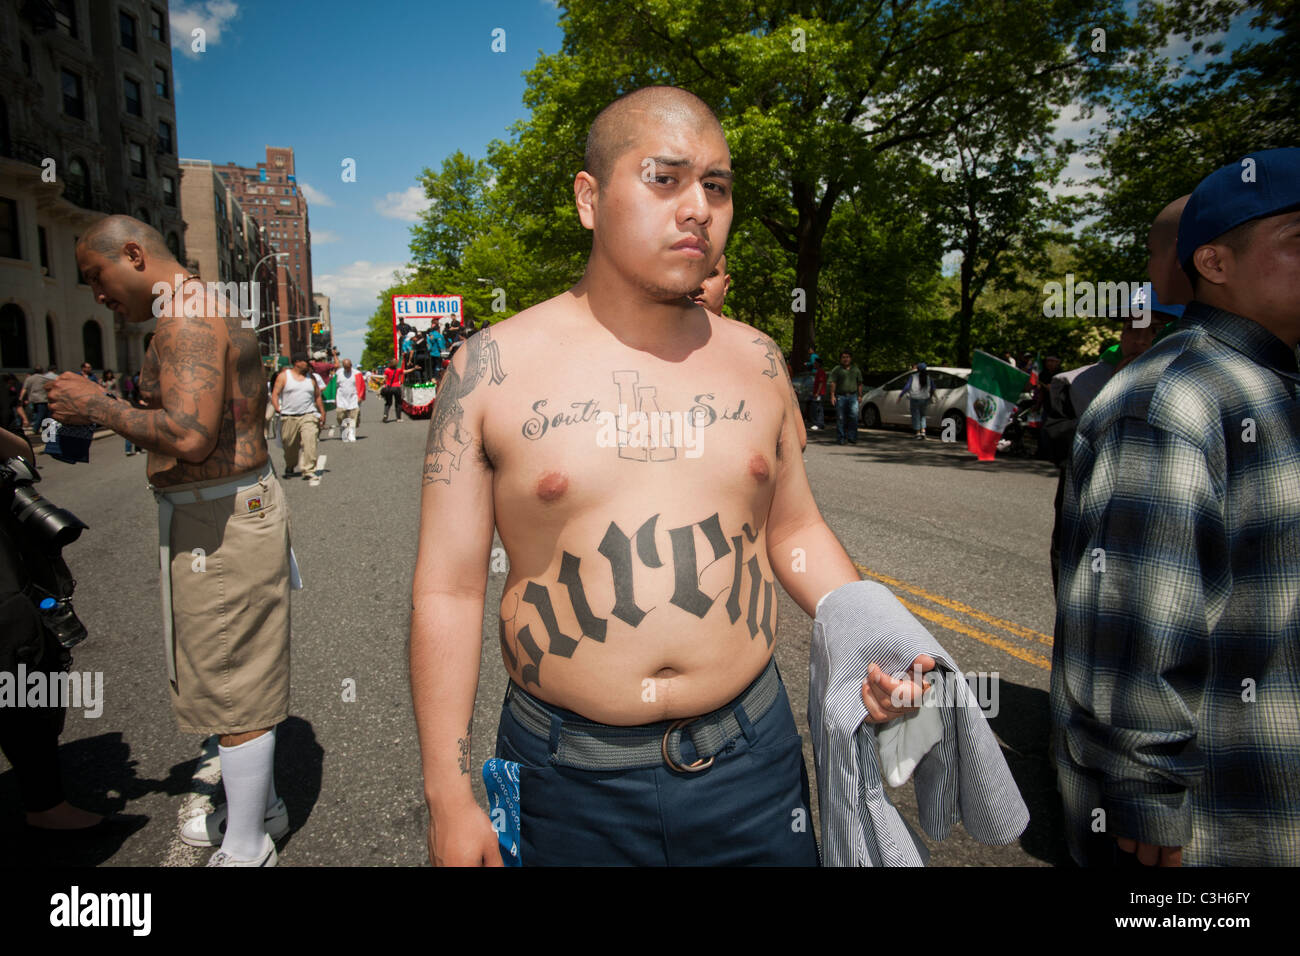 Members of the Brown Life bicycle club show off their tattoos in the Cinco de Mayo Parade - Stock Image